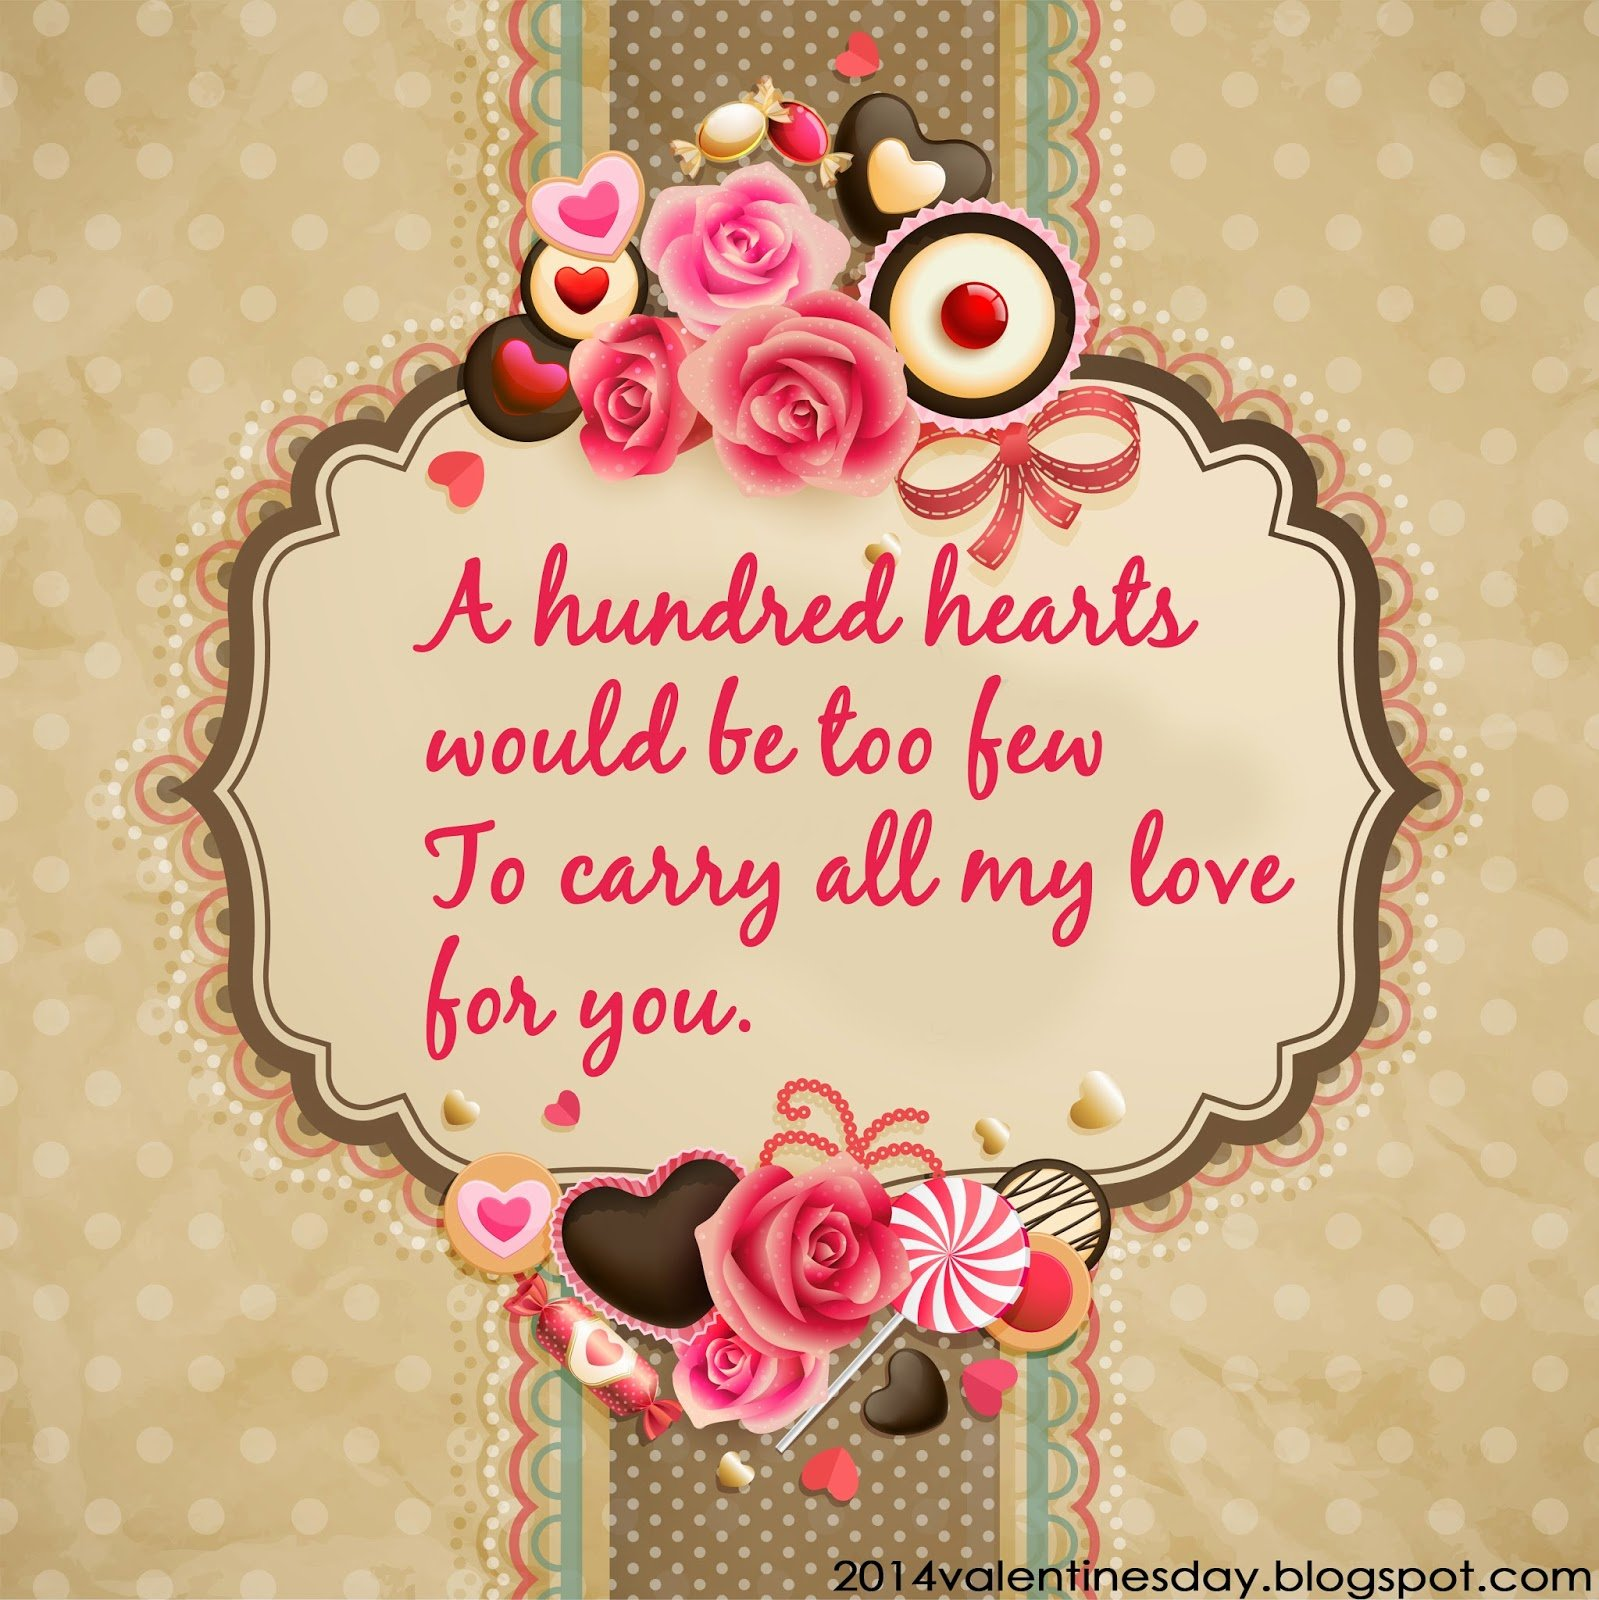 Valentines Day Friendship Quotes. QuotesGram